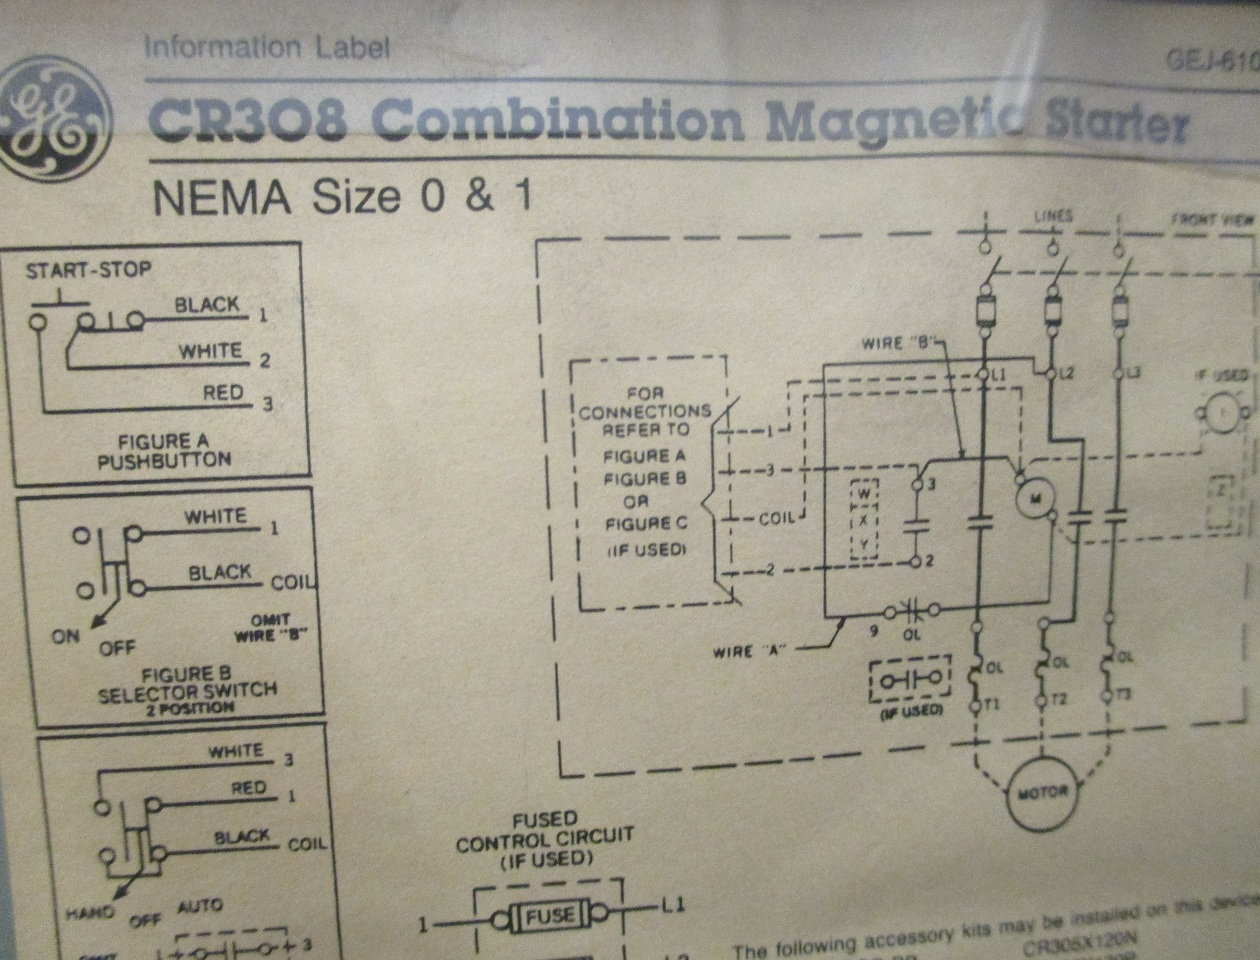 dis3585 ge combination magnetic starter cr308 600v max complete enclosure 300 line control 3?resize\=665%2C507 ge cr 308 motor starter wiring diagram wiring diagrams  at bakdesigns.co